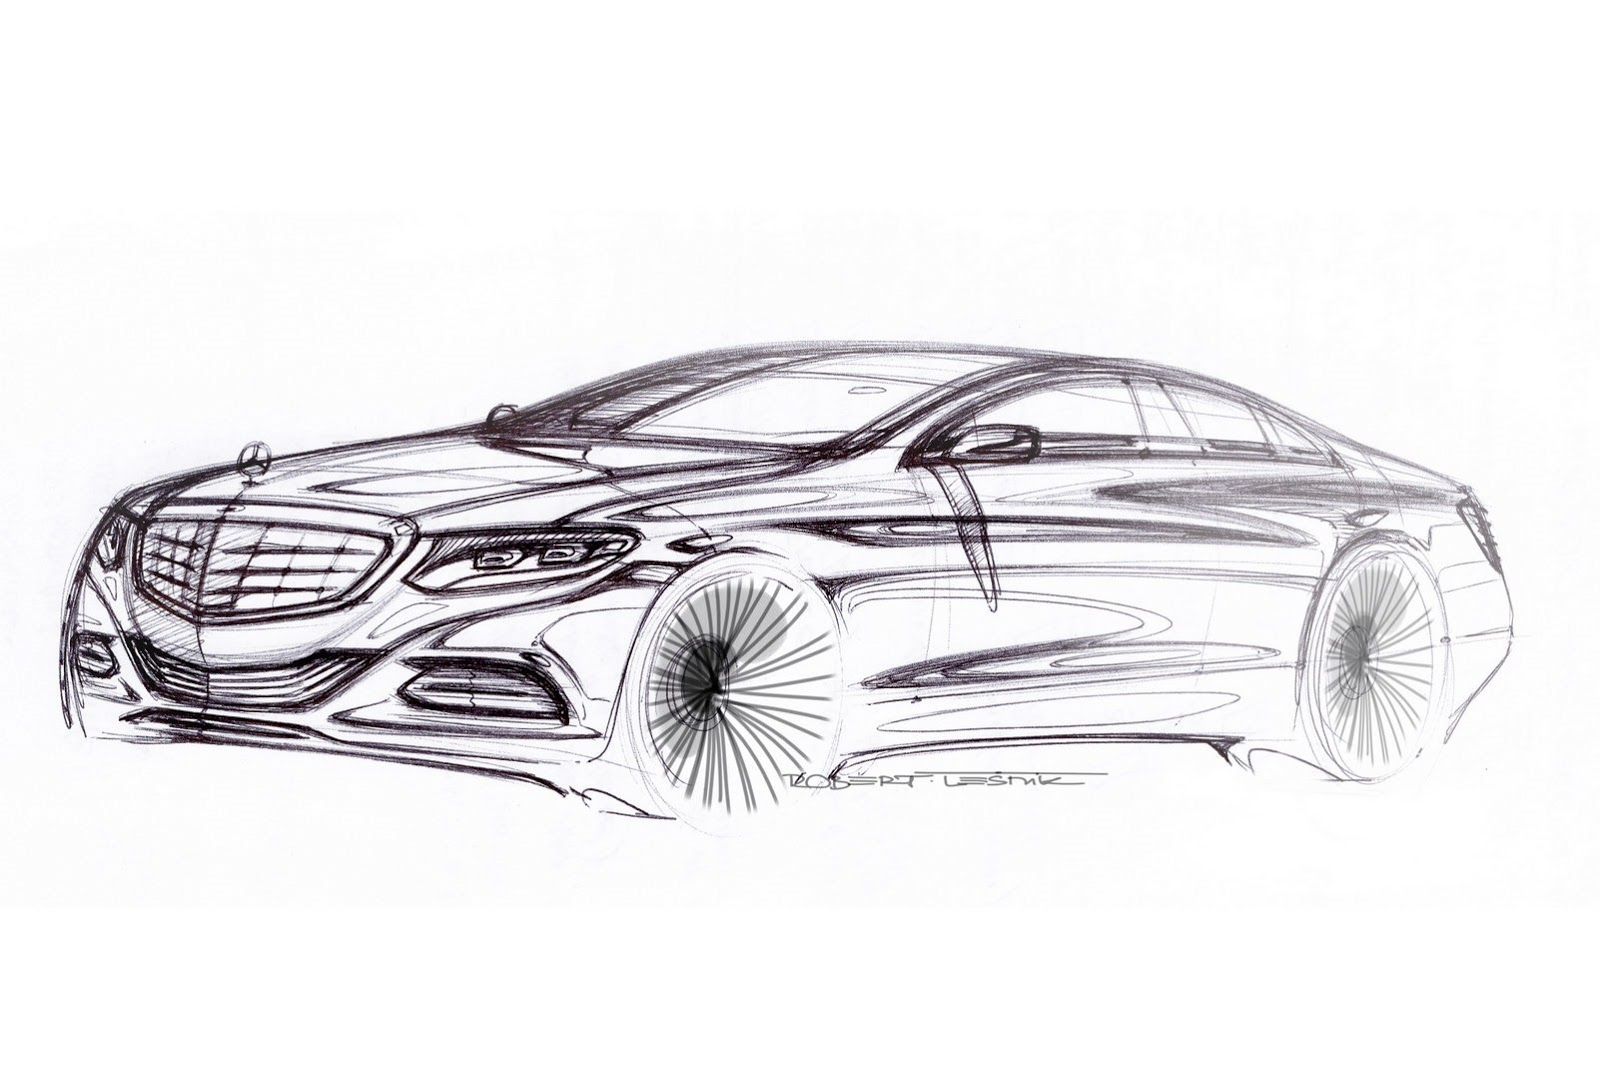 2014 Mercedes Benz S-Class Sketch - SMADE MEDIA (5)